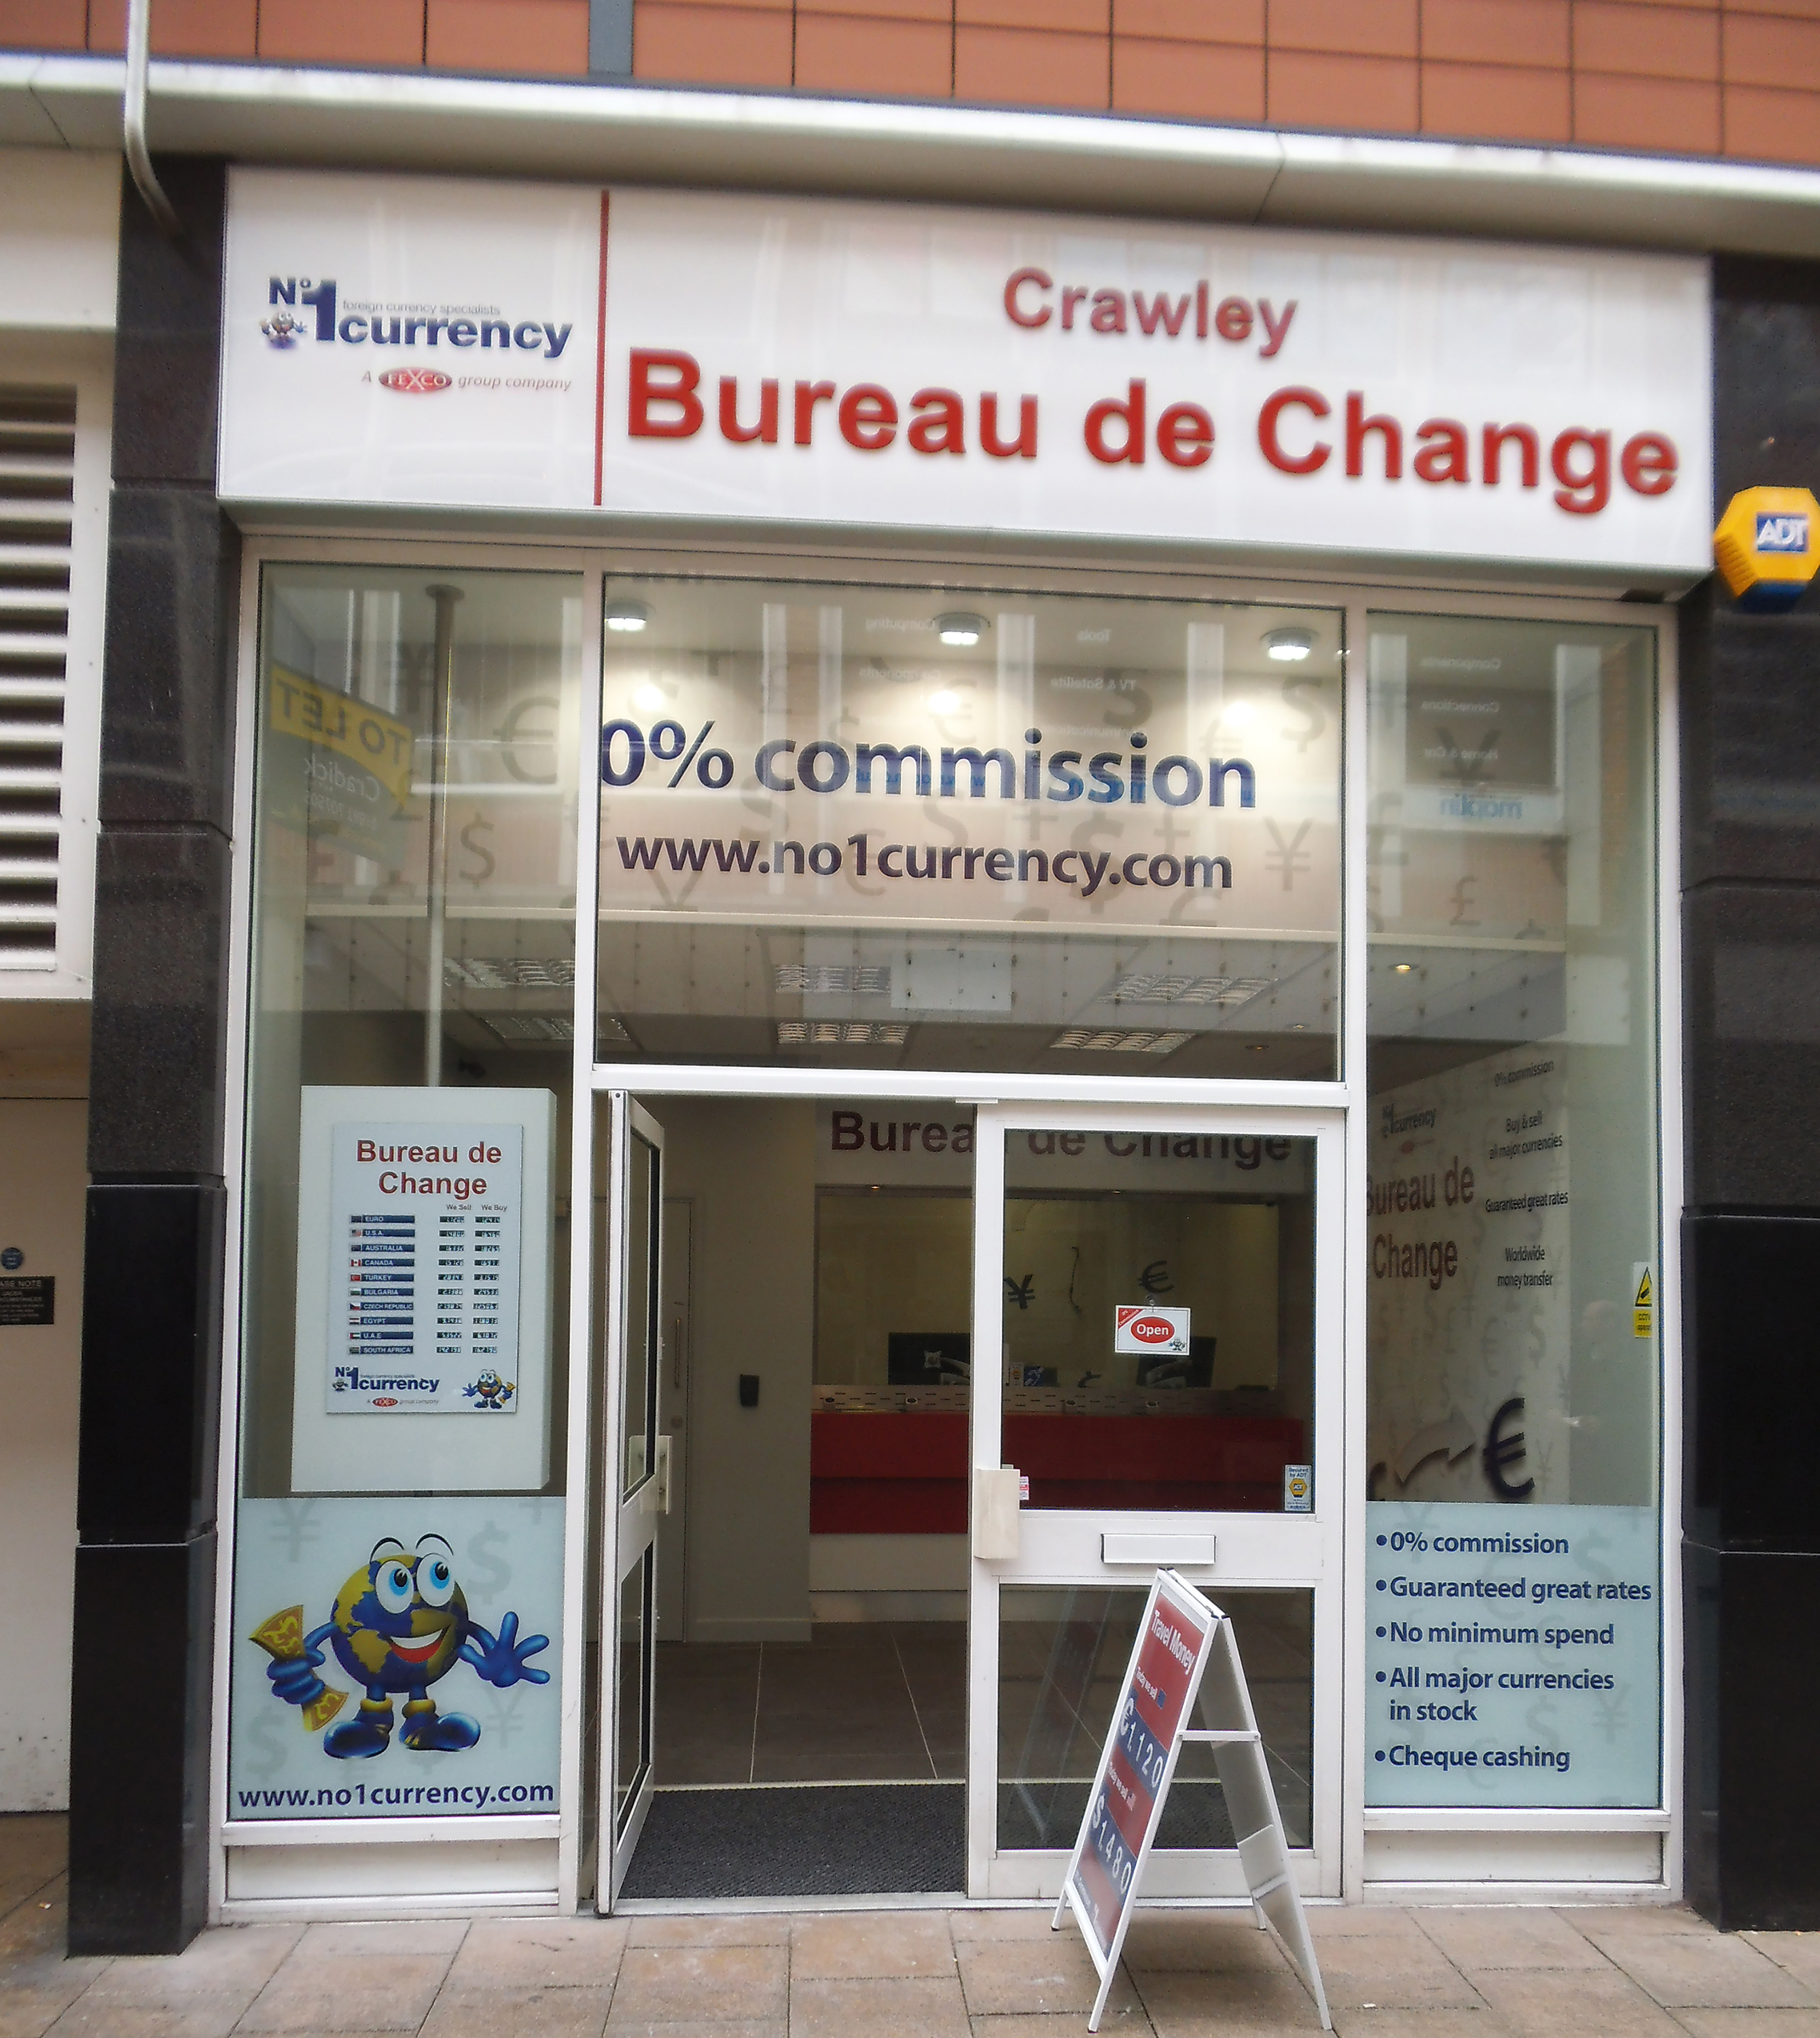 currency exchange store crawley